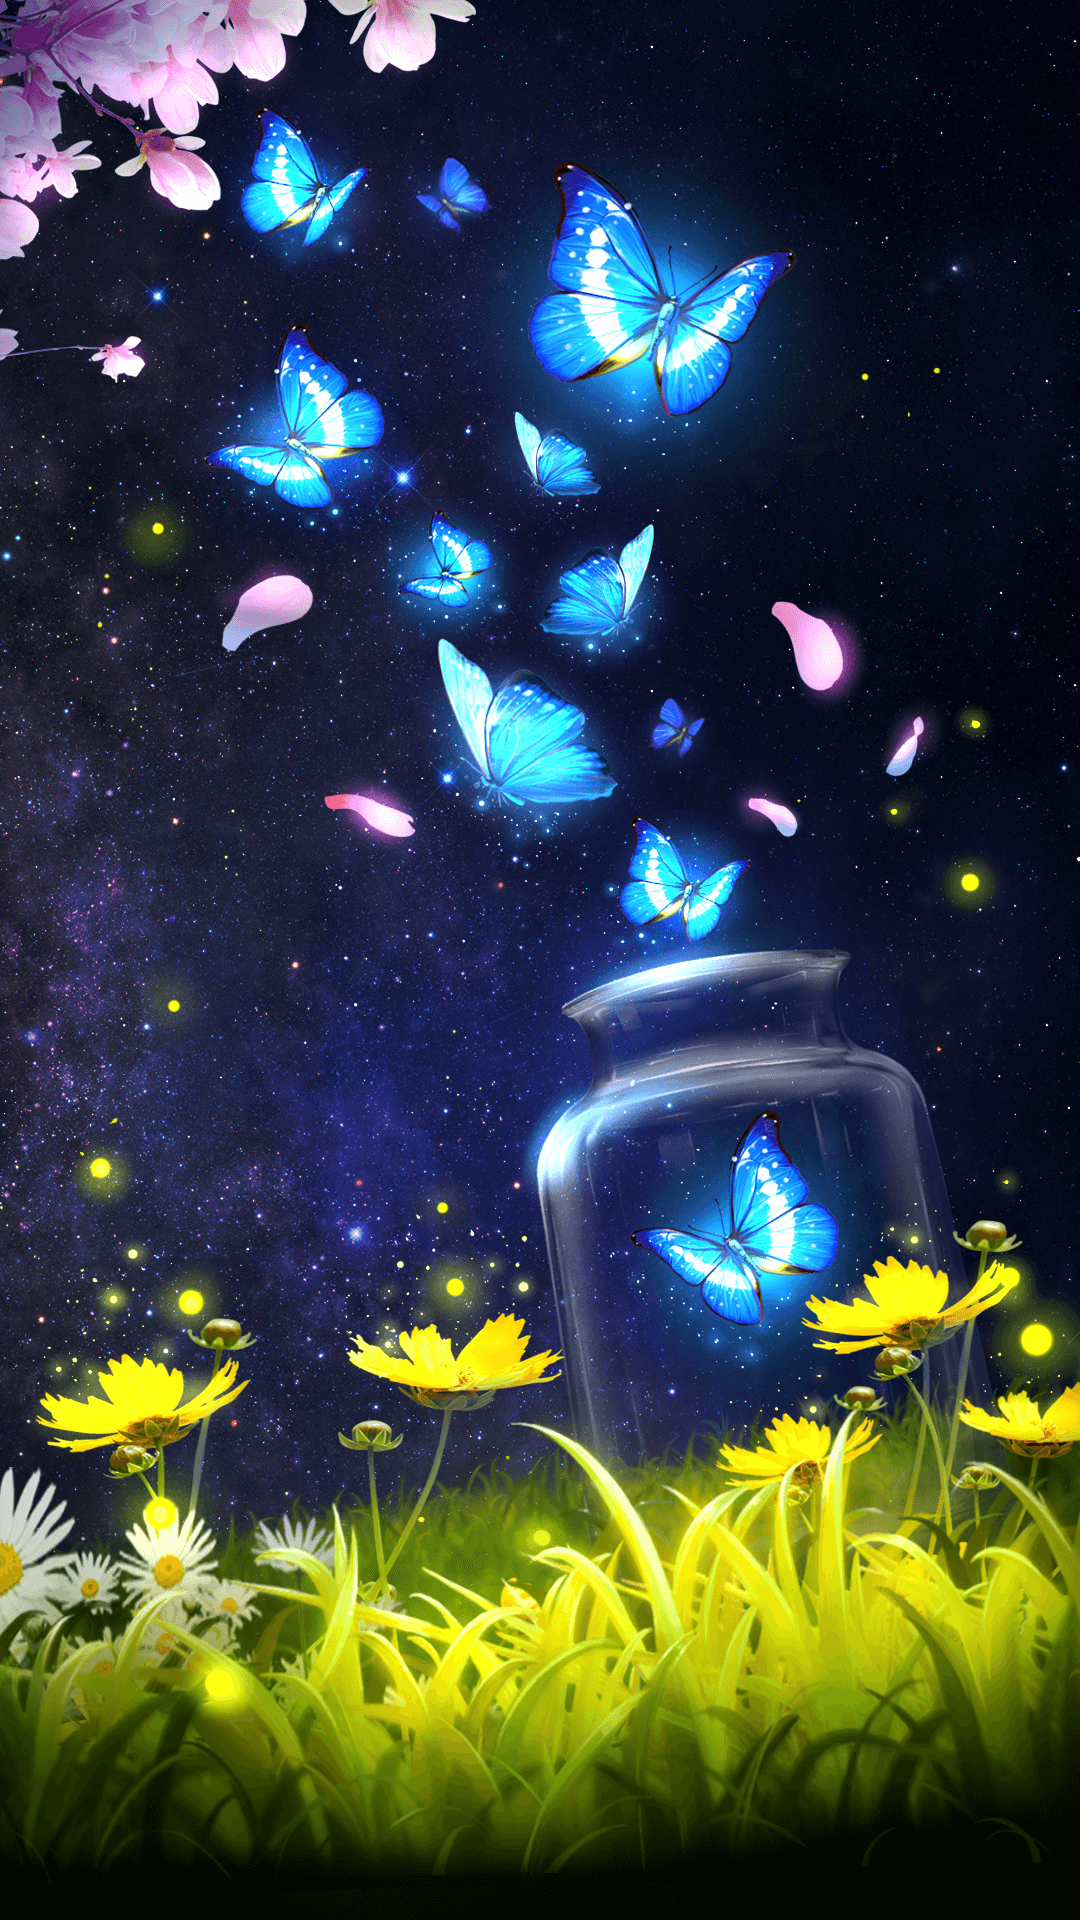 Android Live Wallpaper Backgroundshiny Blue Butterfly Live Wallpaper With Starry Sky As Backgroundmother Chrysanthemum It Is Originally Designed By